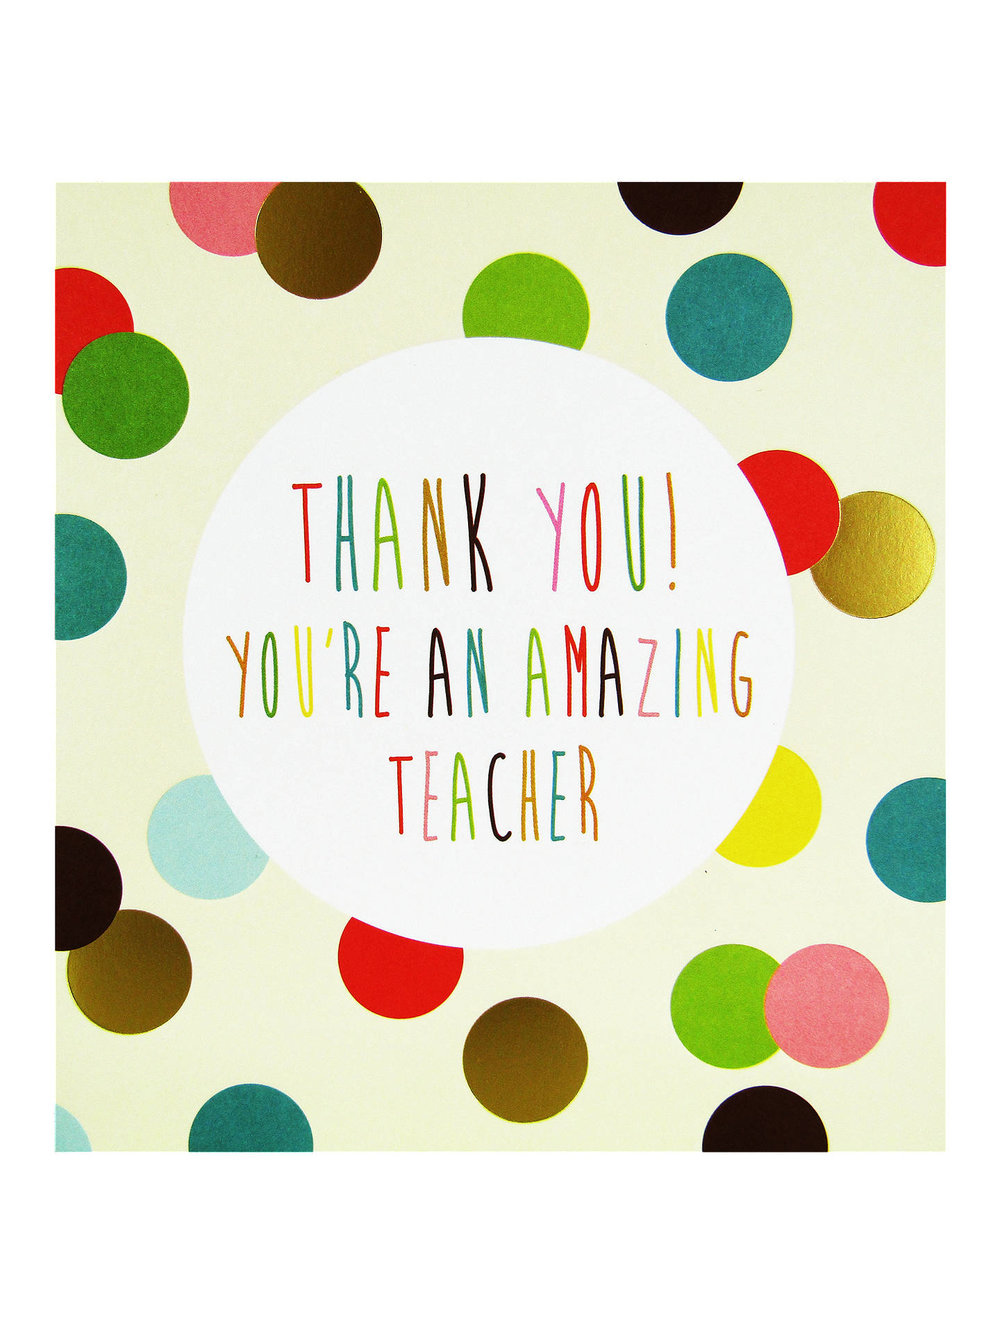 thank-you-teacher-caroline-gardner.jpg